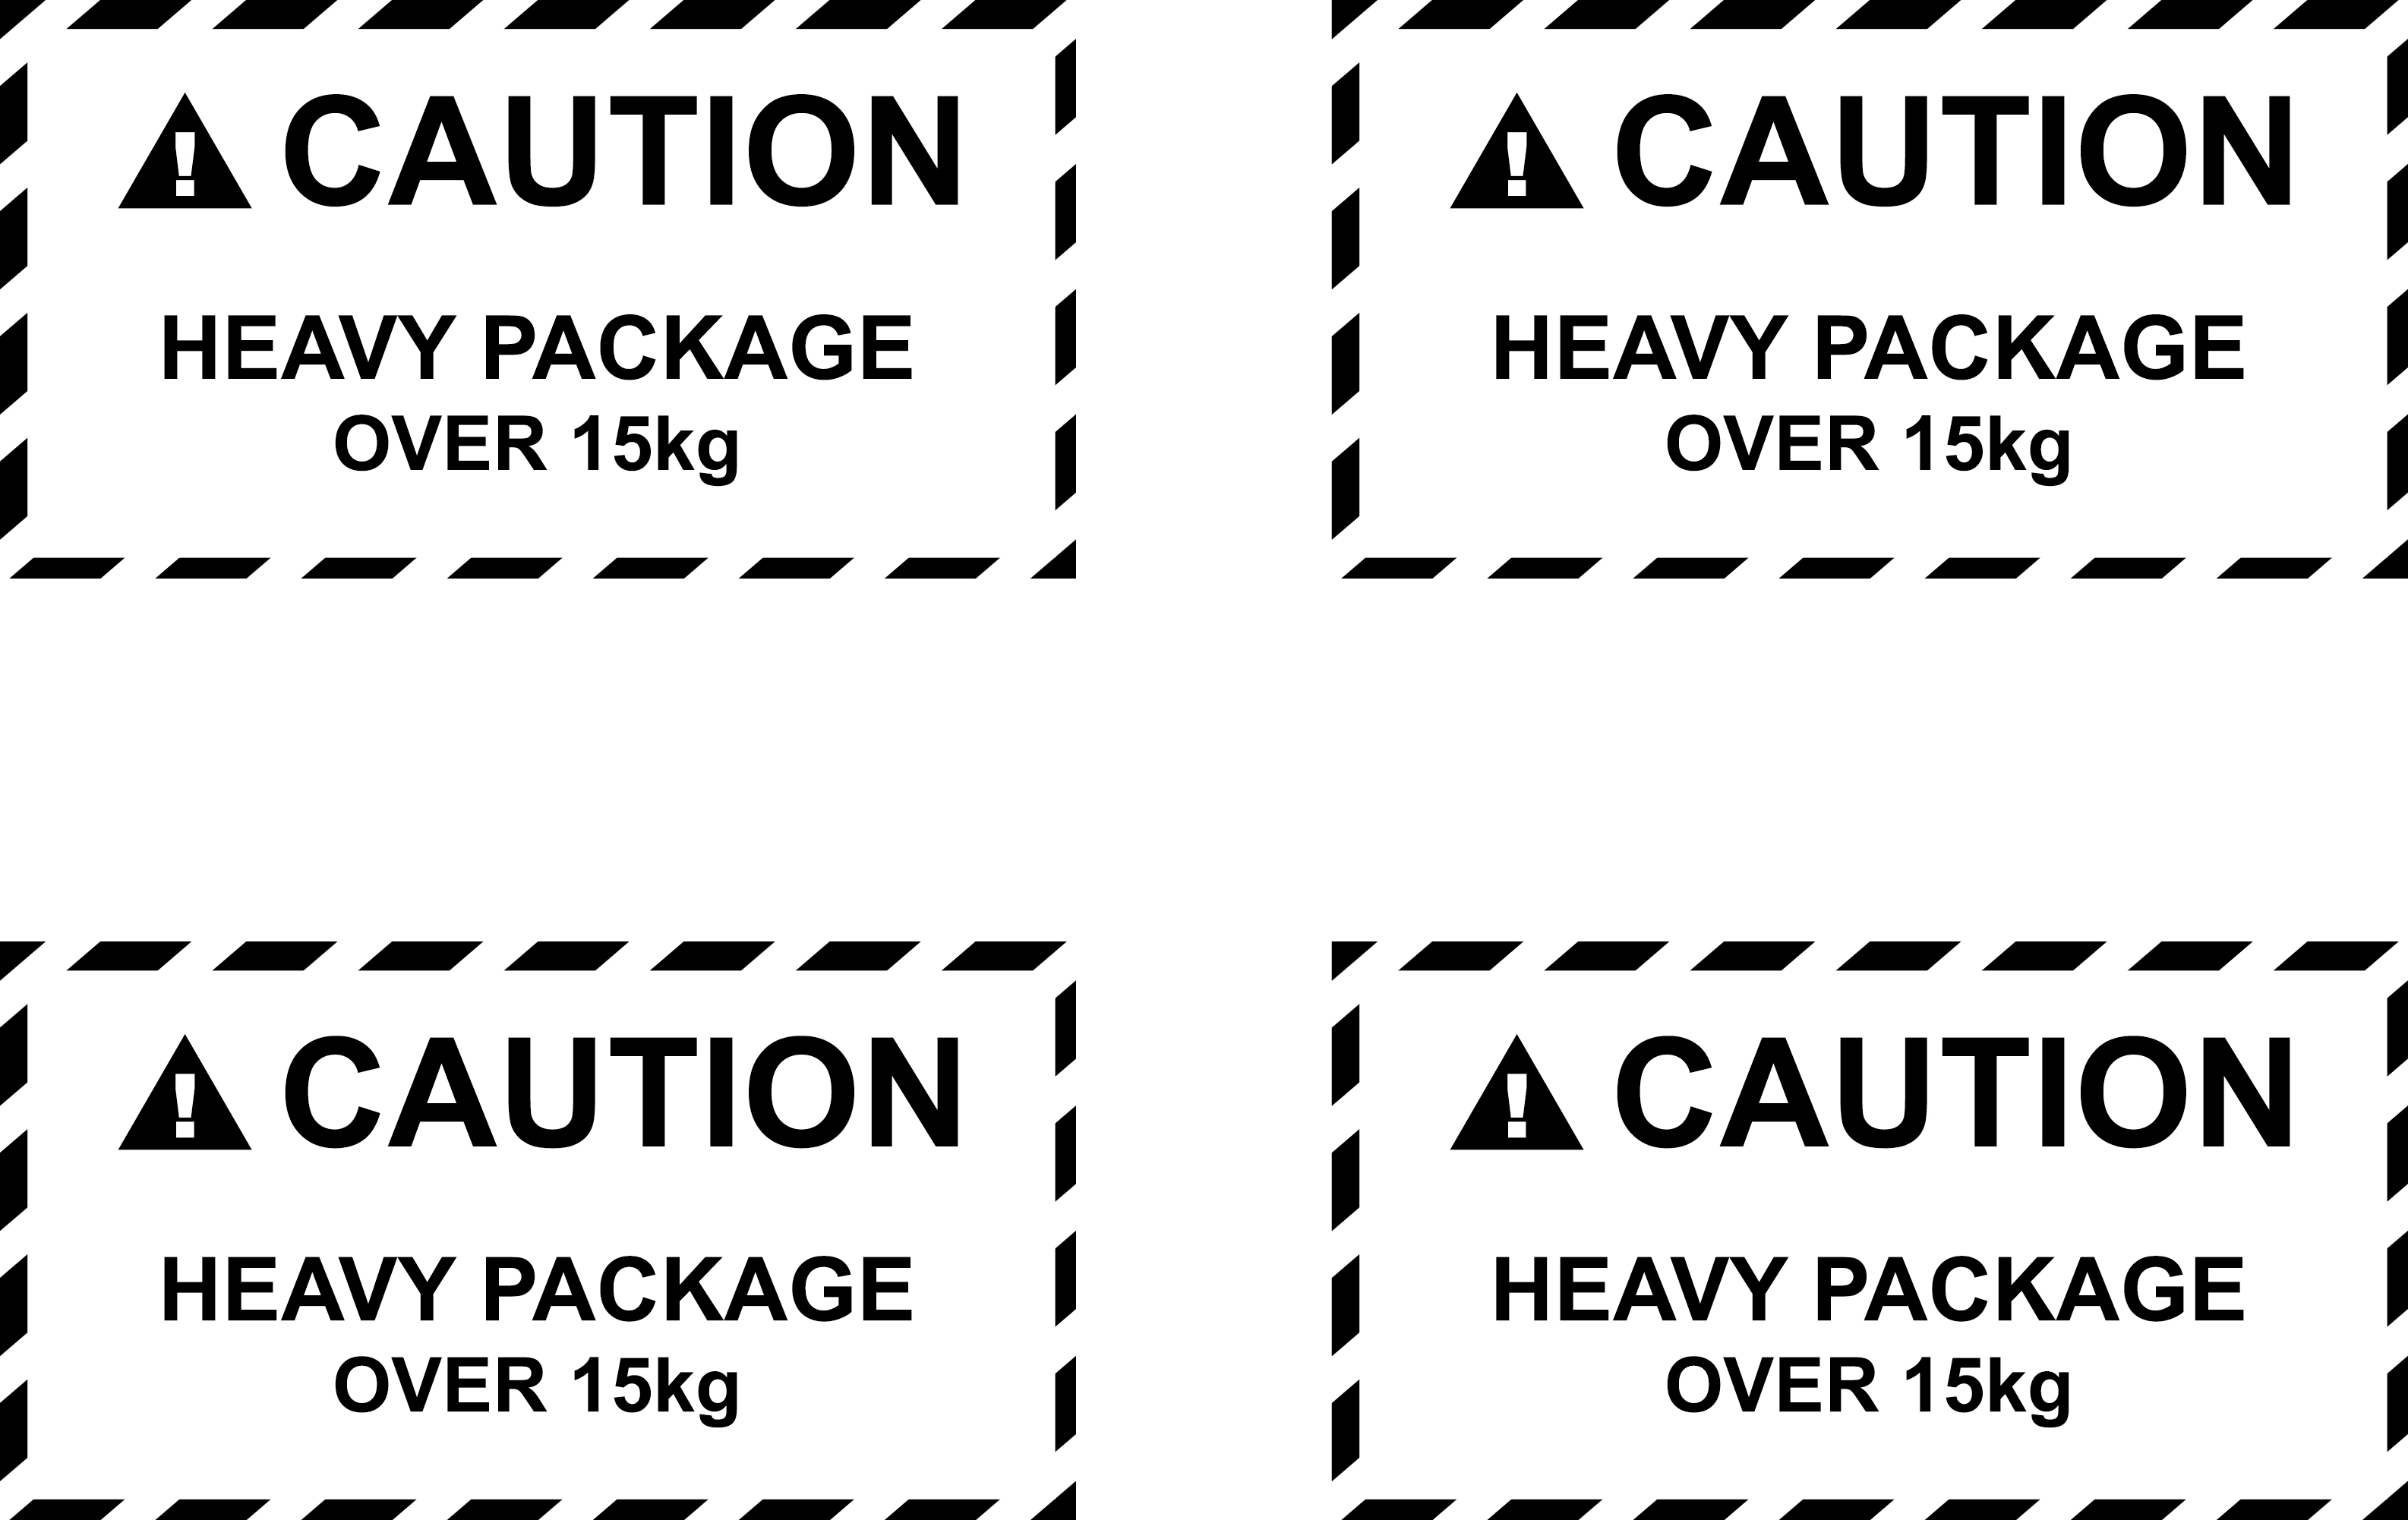 530483158704 as well NHE 27251 together with Pre Designed Label Templates further Eps Boxar Cellplastboxar additionally 111635239712. on warning labels